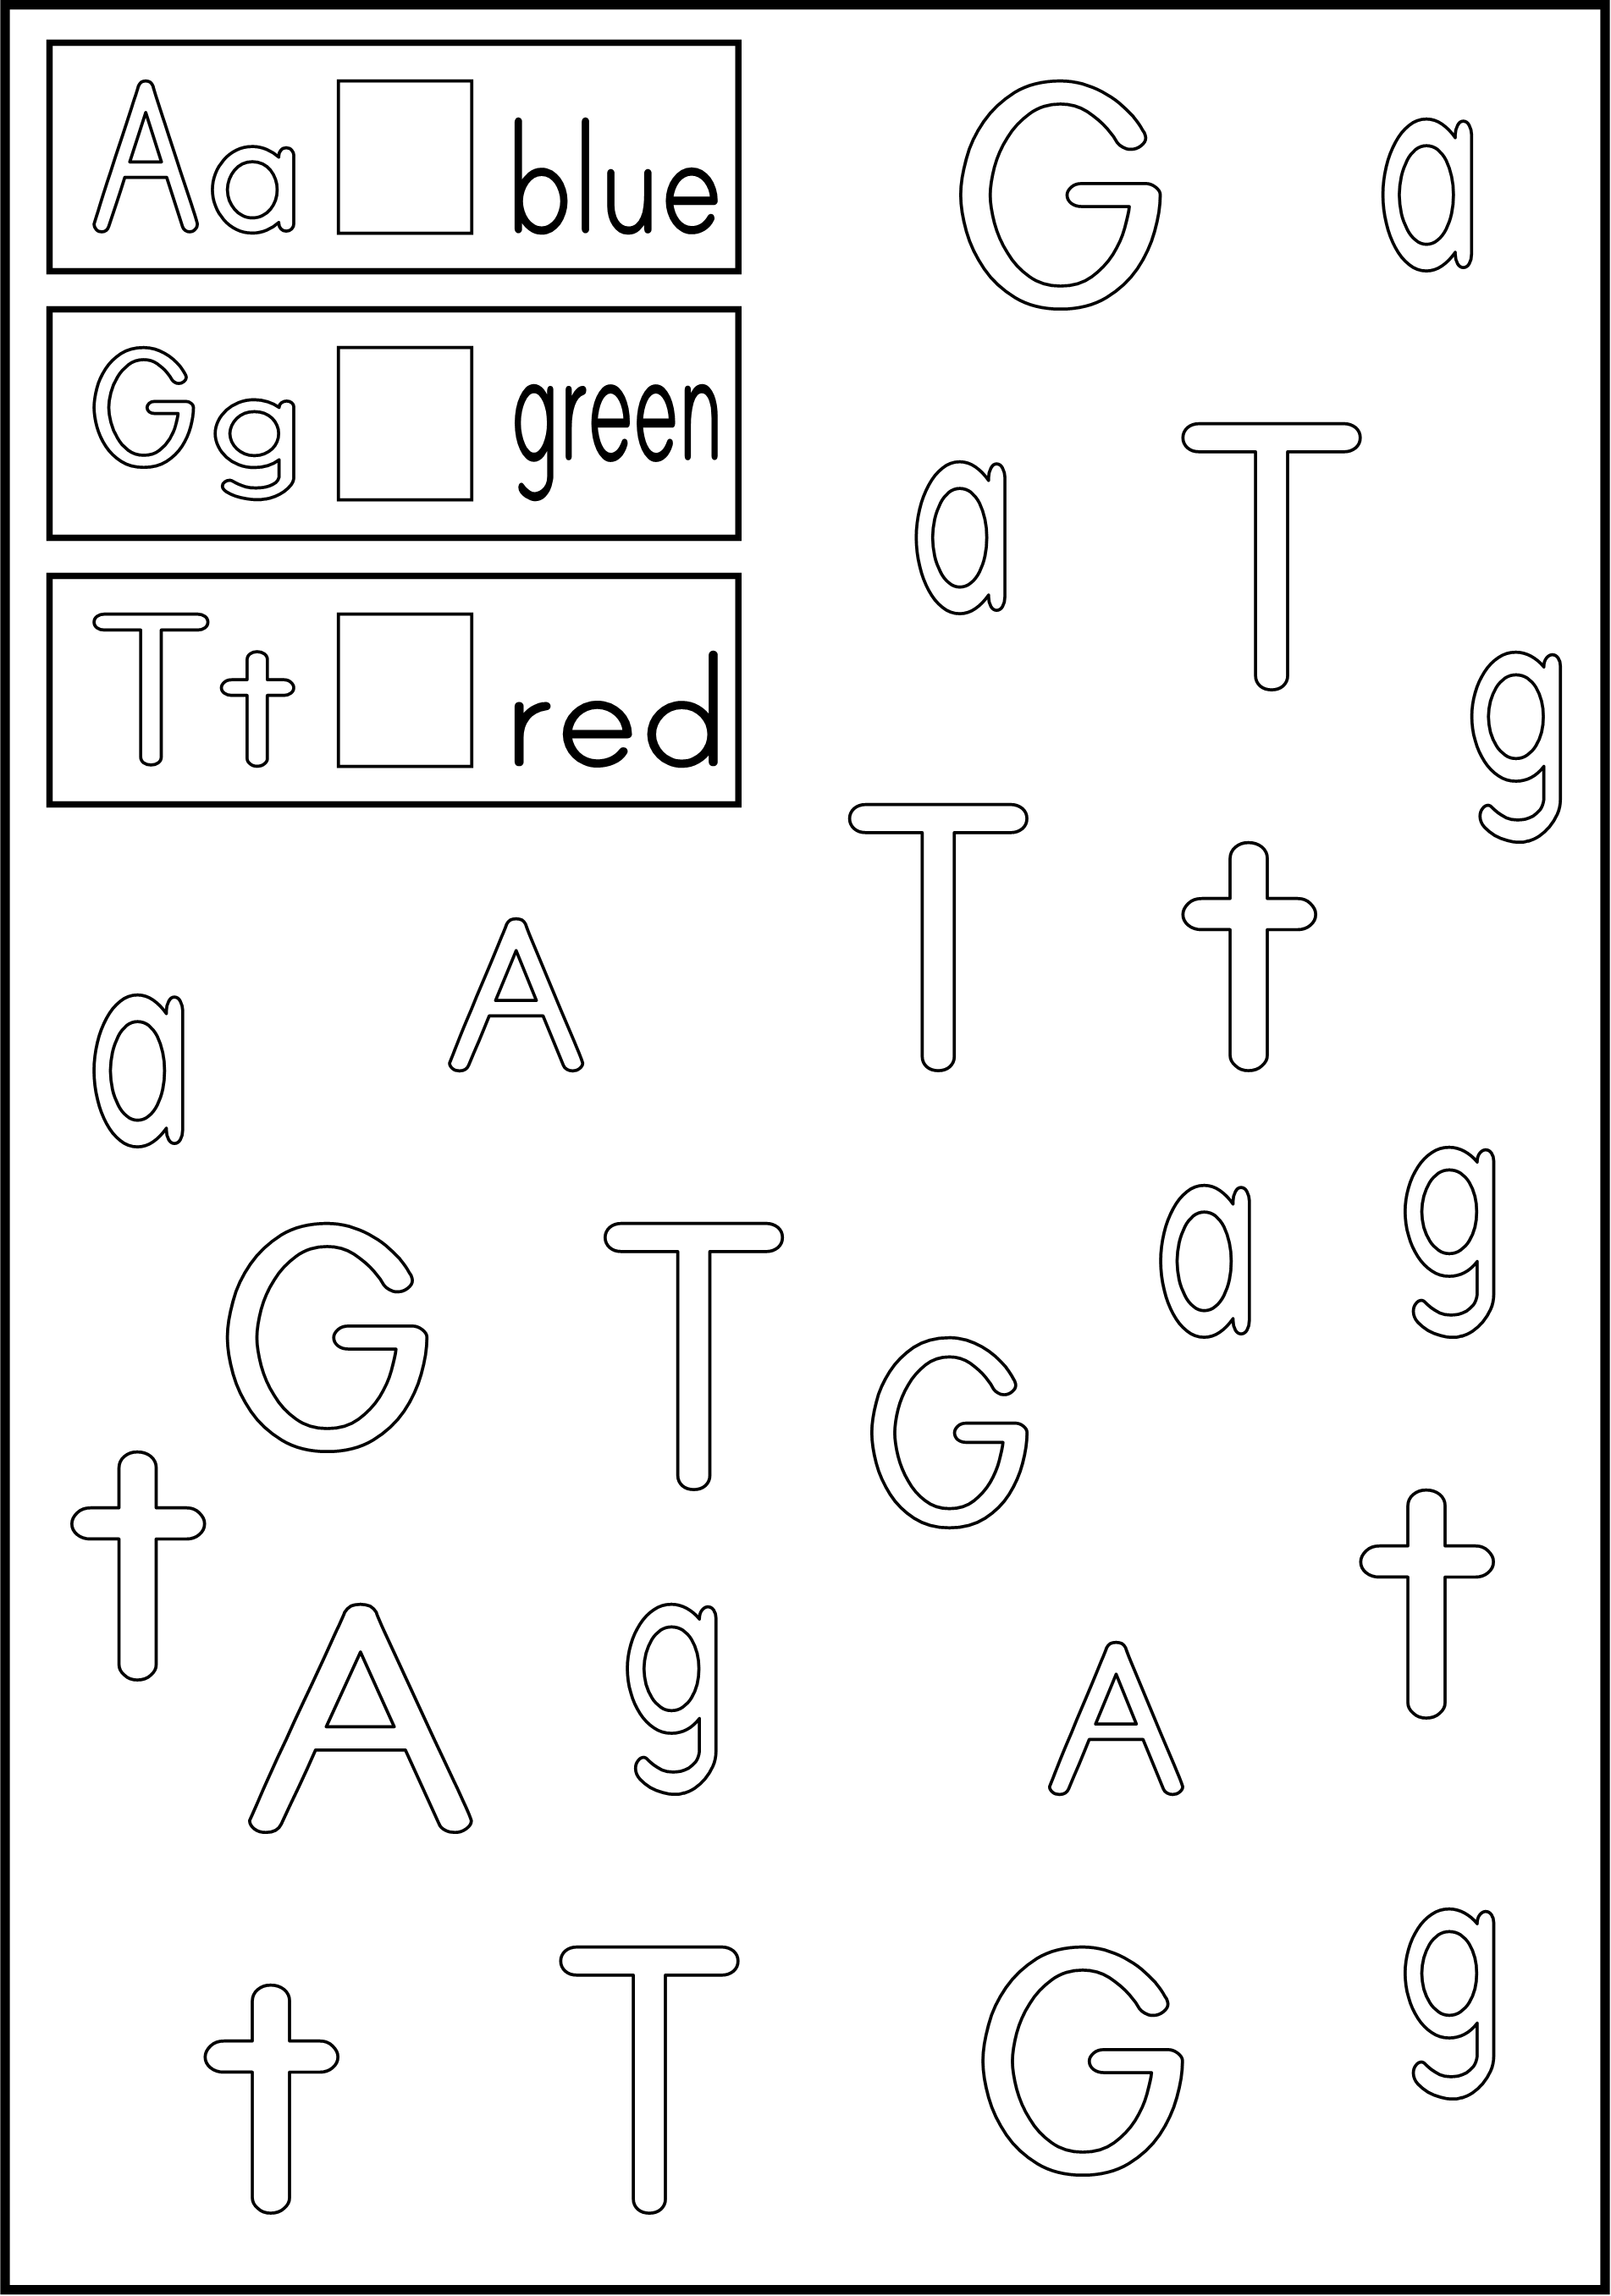 worksheet Alphabet Recognition Worksheets link to letter recognition worksheets color the boxes next letters with appropriate